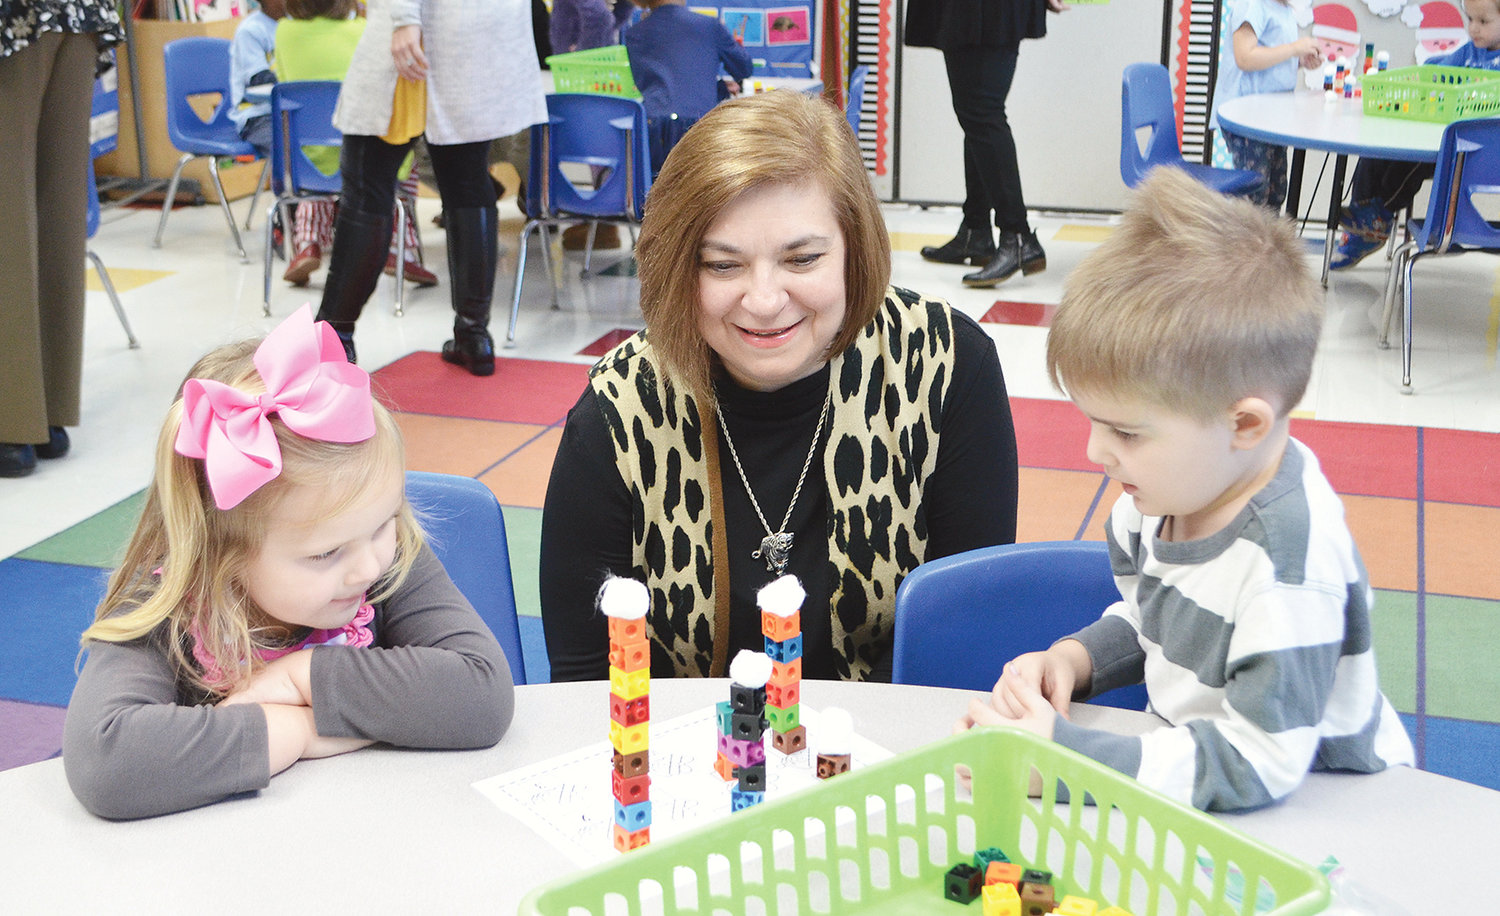 Jasper City Schools board member Teresa Sherer visits with some students at T.R. Simmons Elementary Wednesday.